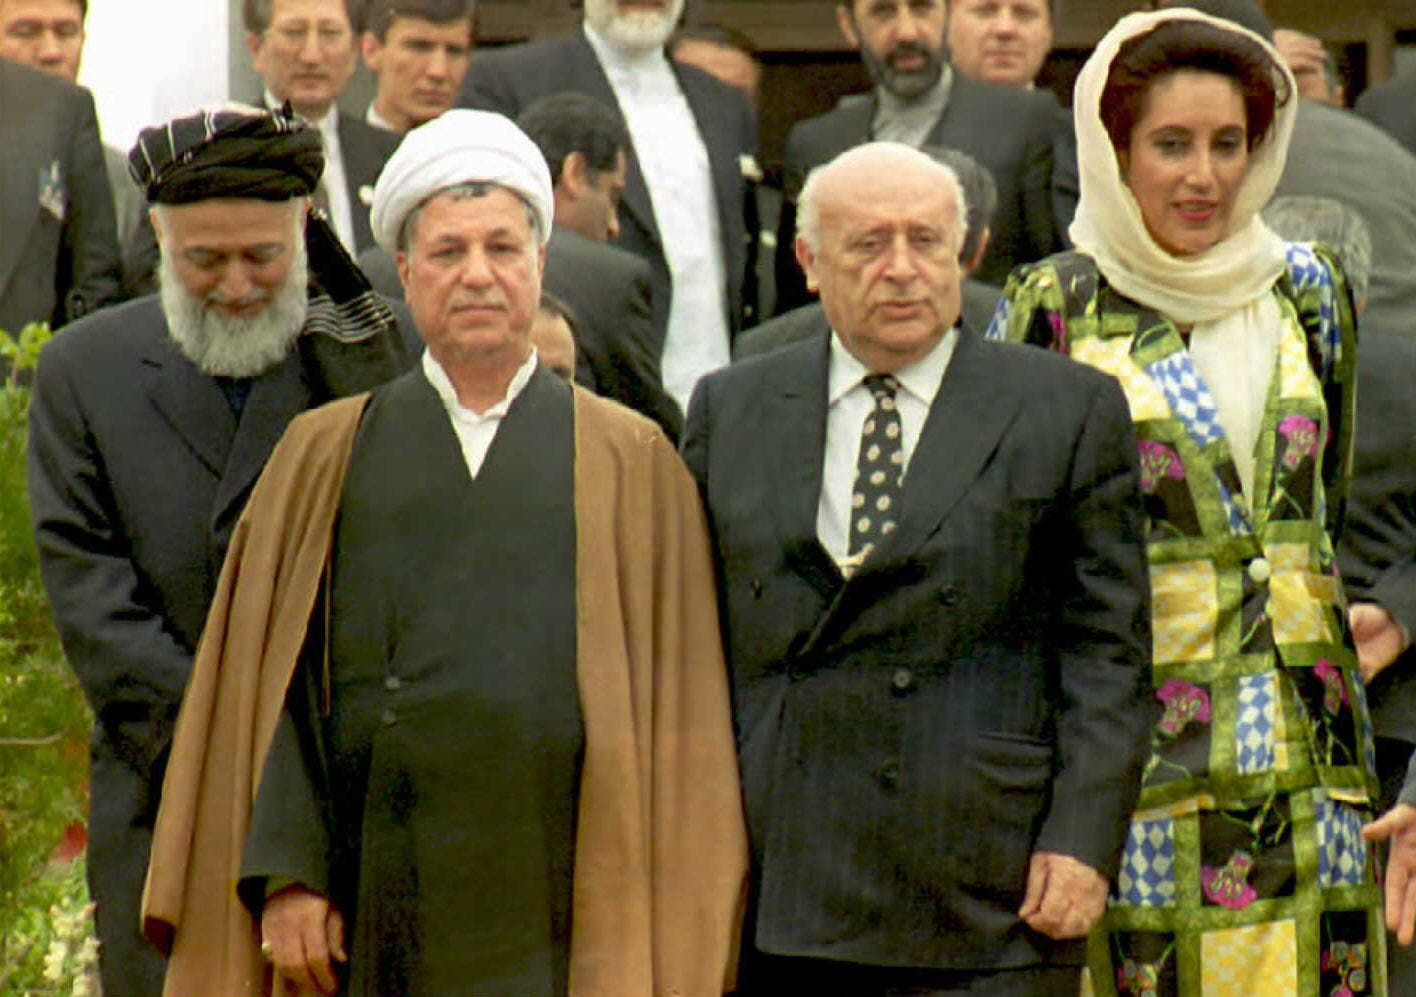 From left, Afghan President Burhanuddin Rabbani, Iranian President Ali Akbar Hashemi Rafsanjani, and Turkish President Suleiman Demirel walk with Pakistani Prime Minister Benazir Bhutto as they left a conference room after informal discussions on the second and final day of the summit of the 10-nation Economic Cooperation Organization (ECO) in Islamabad in 1995 (Photo: Tanveer MUGHAL / naq / mf / AFP)